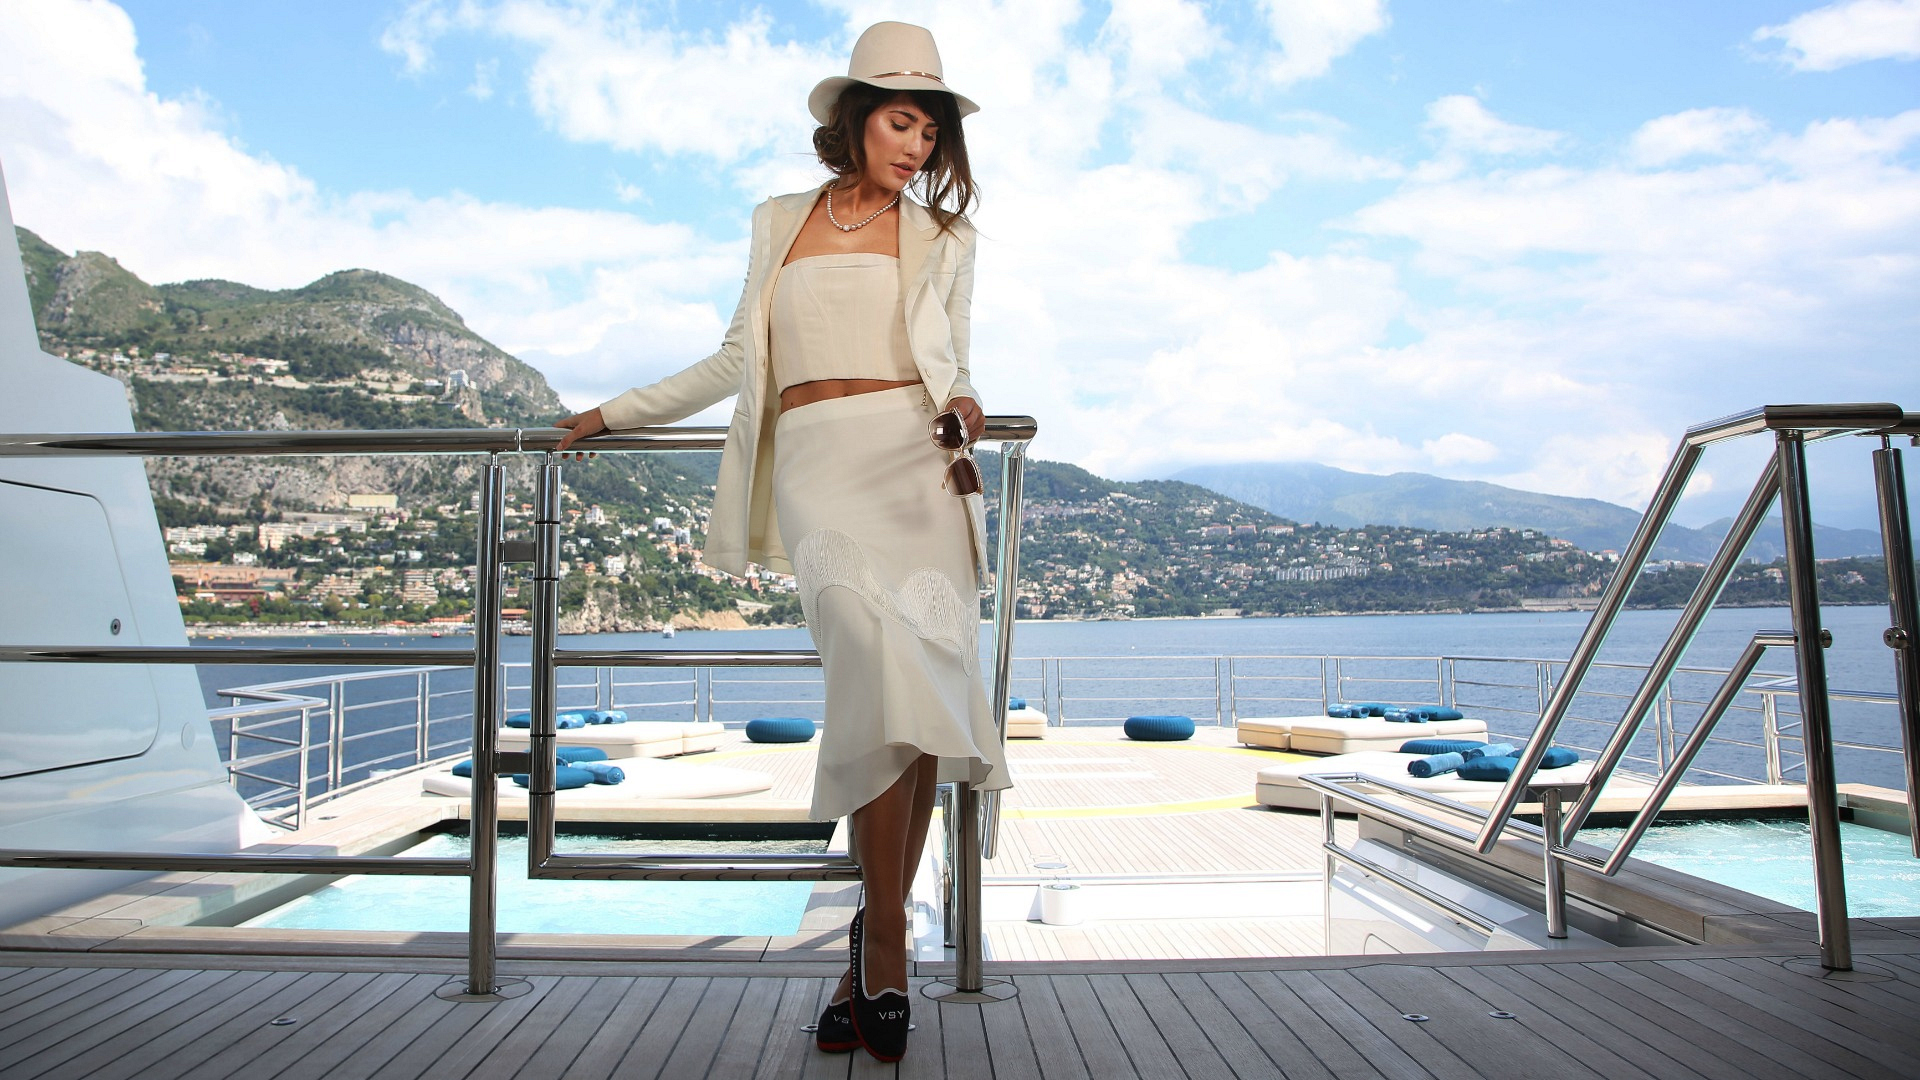 Photo shoot on #StellaMaris #MonteCarlo